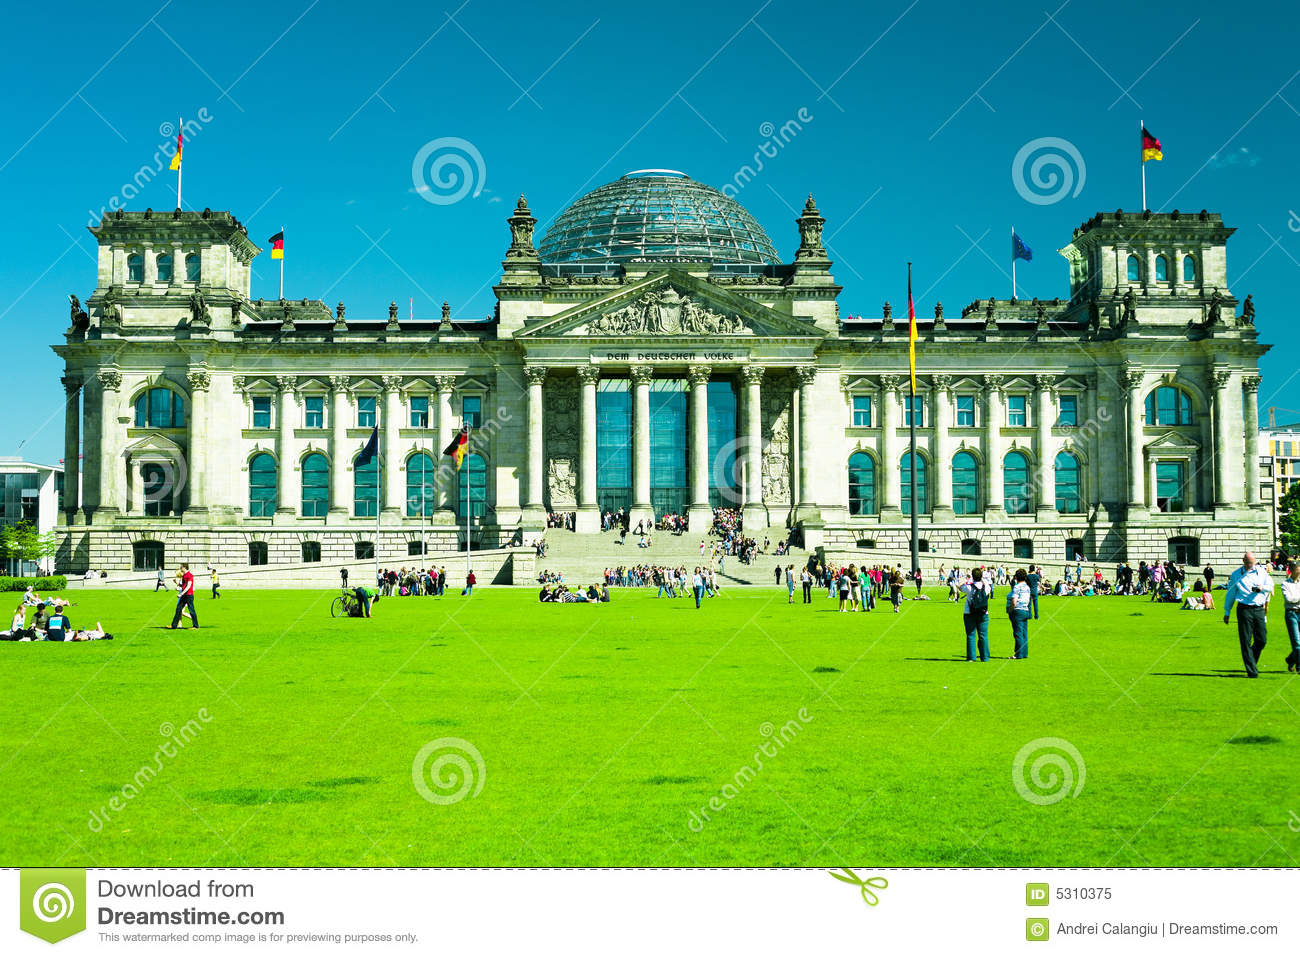 Download Il Parlamento di Berlino immagine stock. Immagine di berlino - 5310375